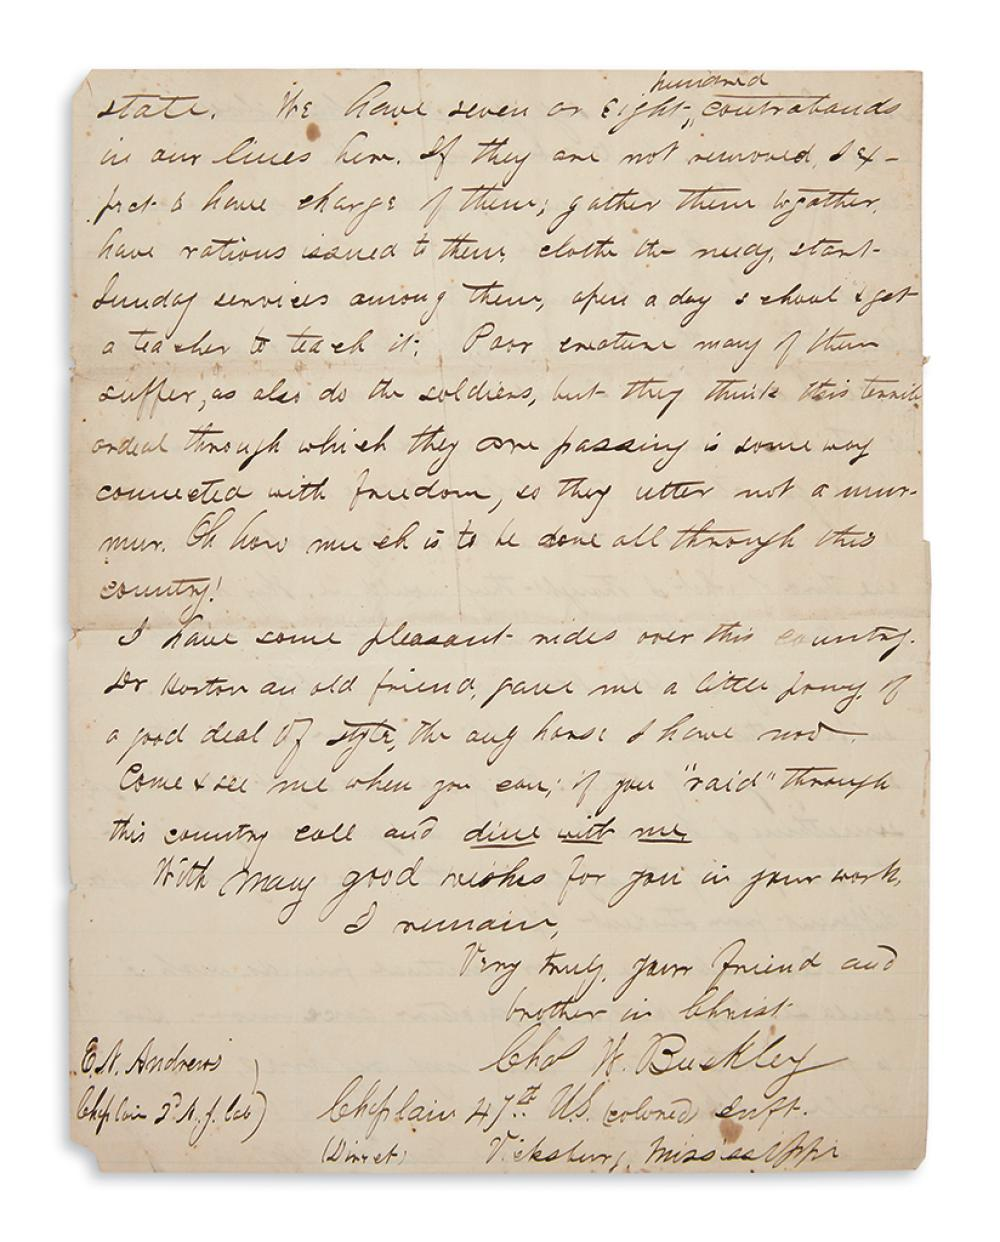 (MILITARY--CIVIL WAR.) Buckley, Charles Waldron. Letter by the white chaplain of the 47th U.S. Colored Infantry.